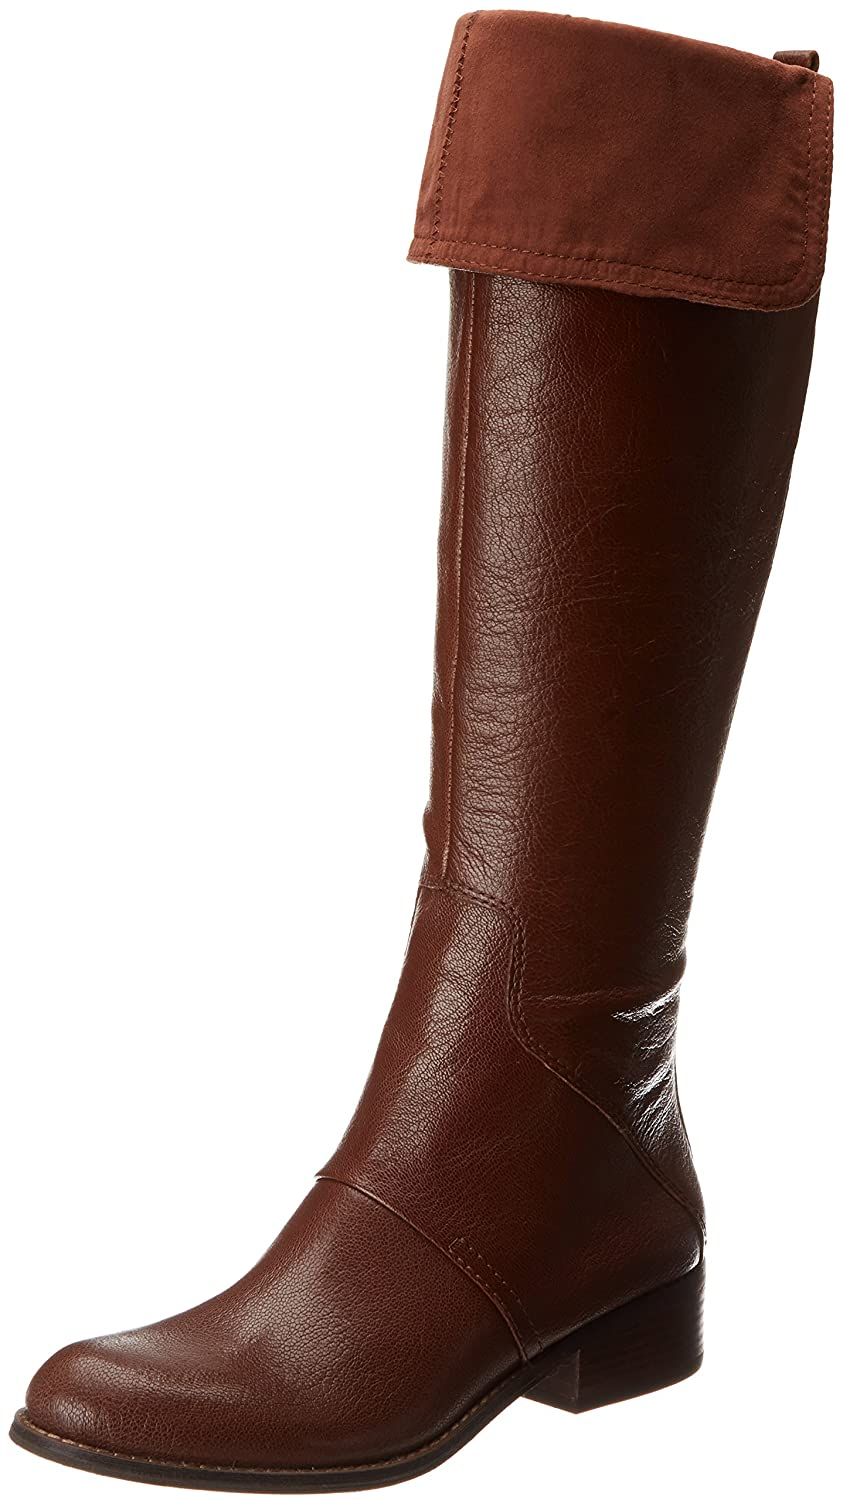 Women's Cognac Genuine Pebbled Leather Knee-High Fold Over Cuff Pirate Boots - DeluxeAdultCostumes.com